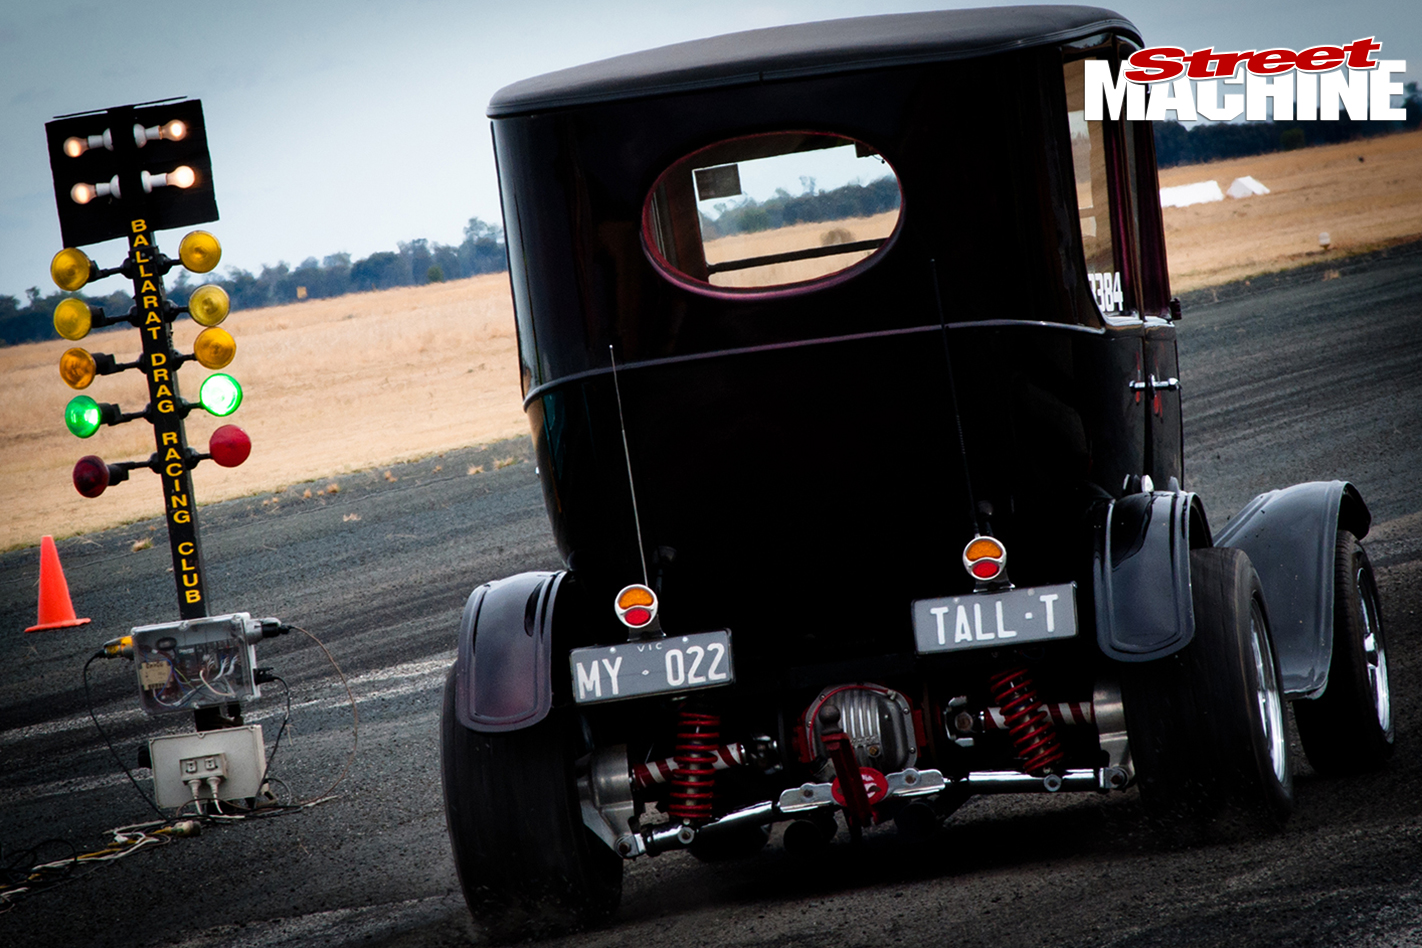 Deniliquin -cruising -nationals -dragstrip